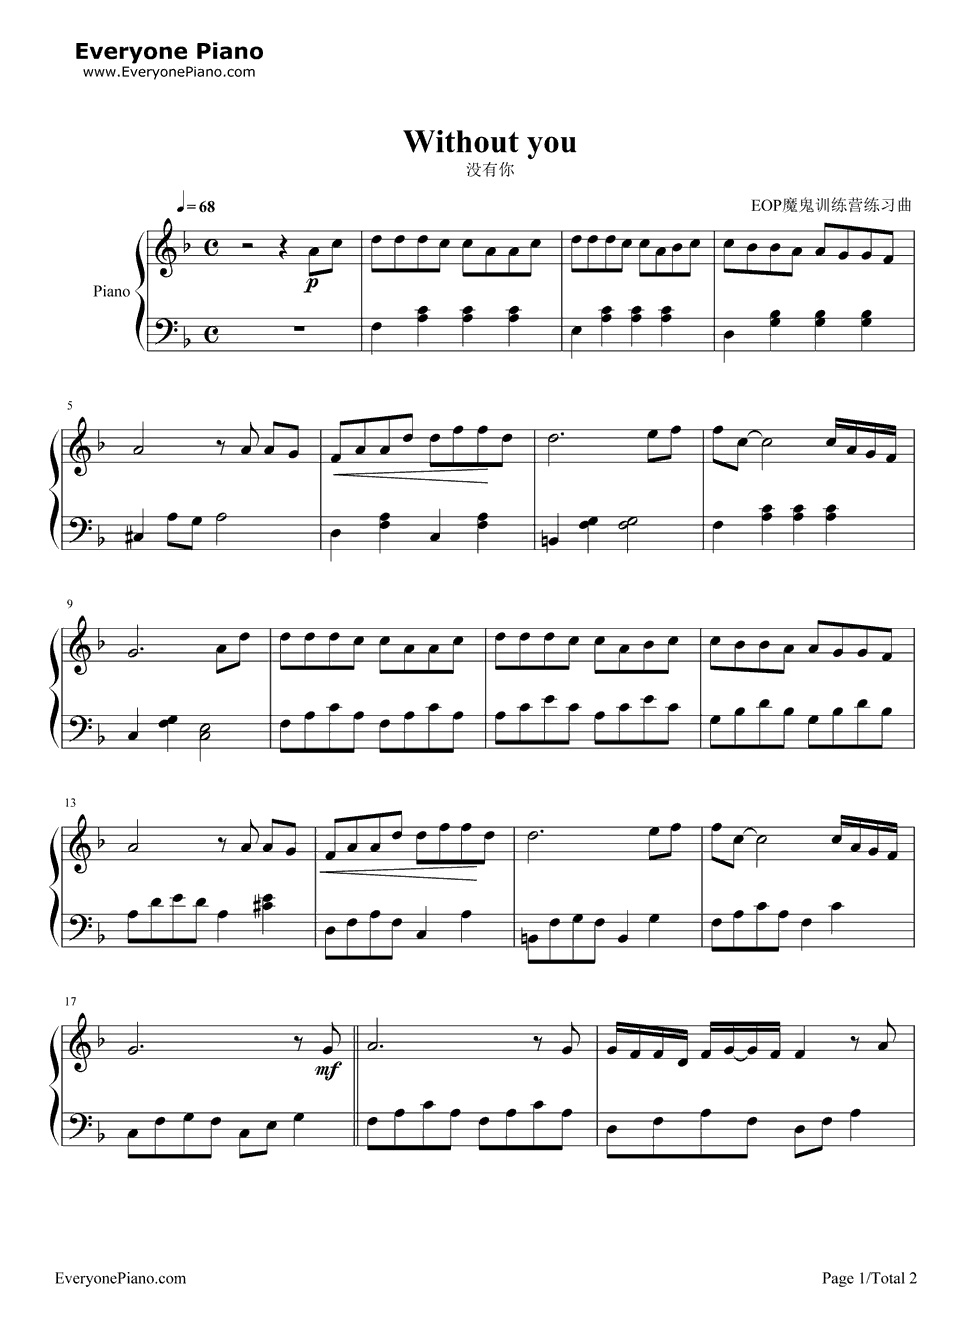 Without You Stave Preview 1-Free Piano Sheet Music u0026 Piano Chords